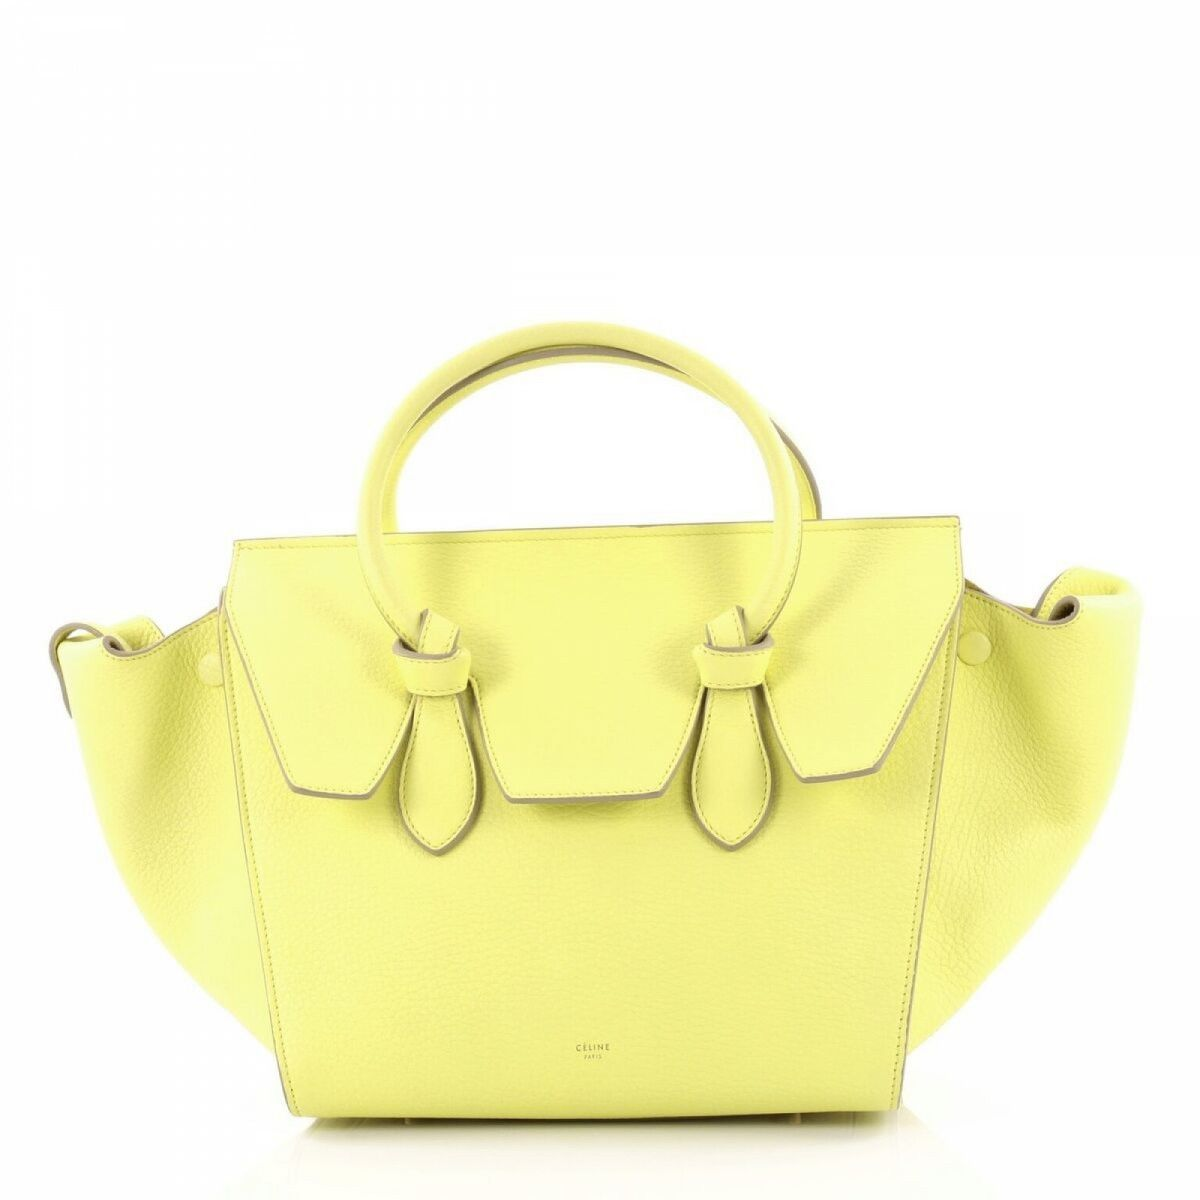 Céline Luge Tze New Runway Sunflower Small Tricolor Leather